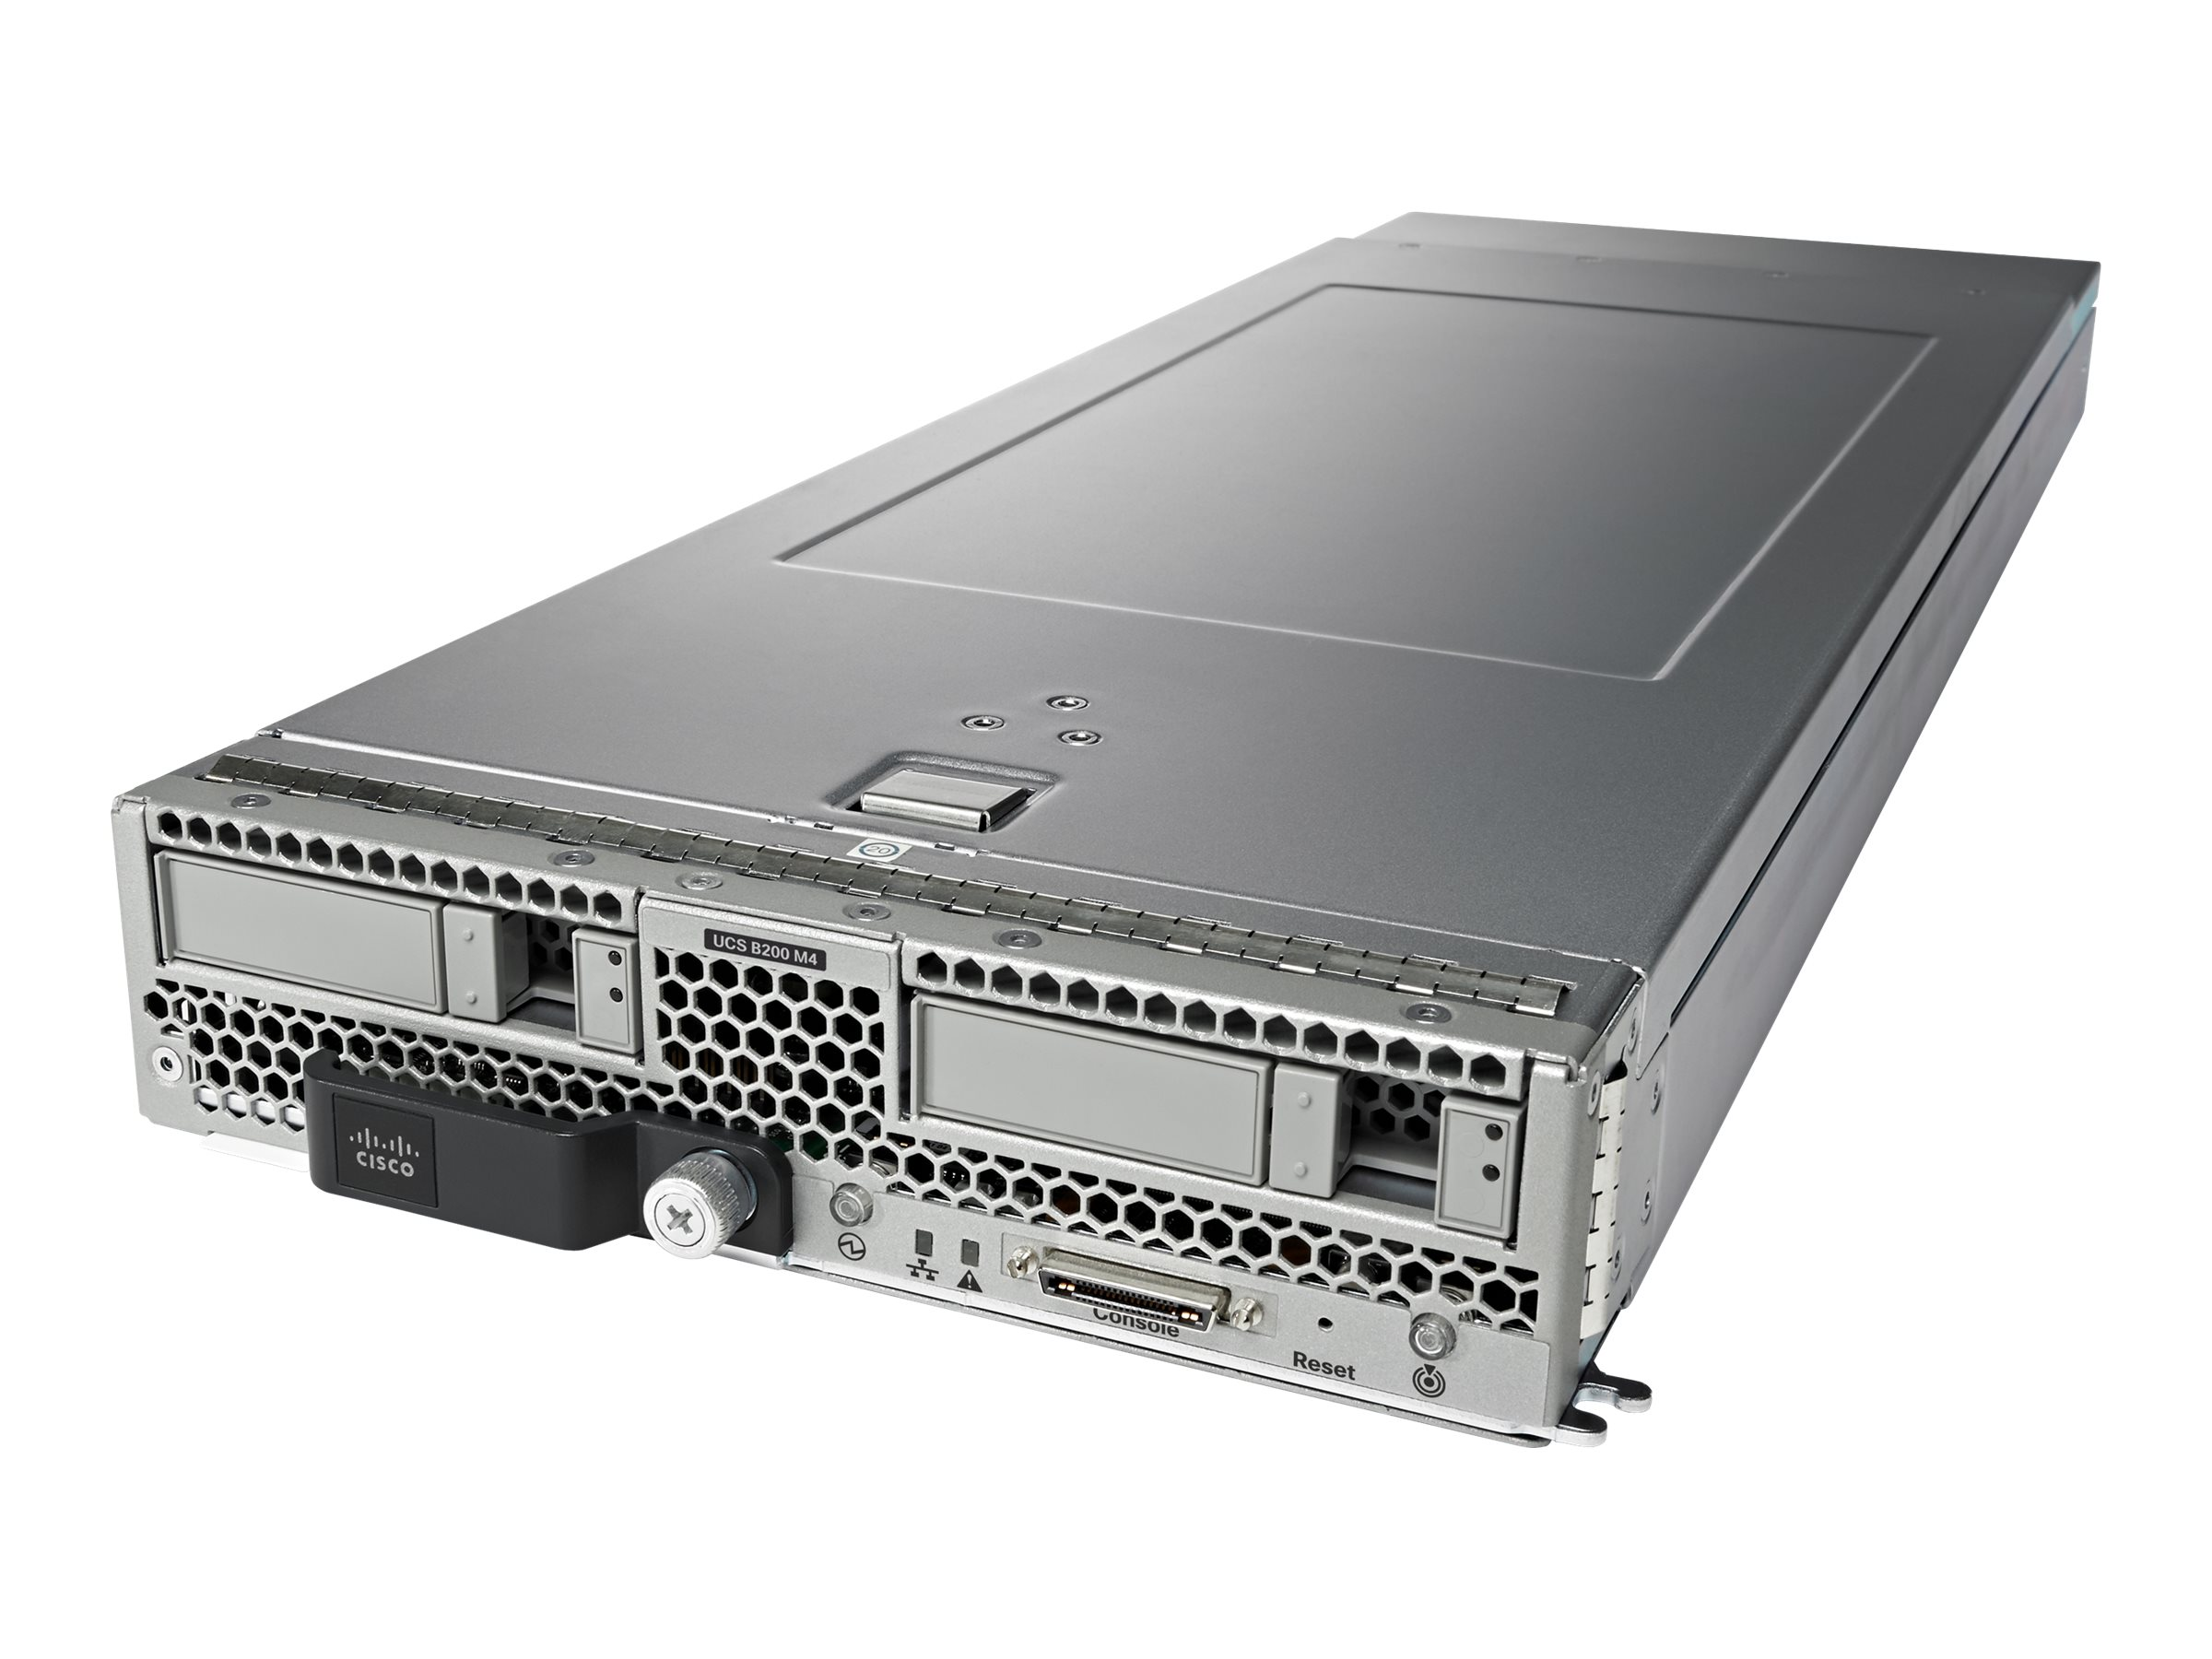 Cisco UCS Smart Play Select B200 M4 Blade Advanced 3 (2x)Xeon E5-2670 v3 256GB VIC1340